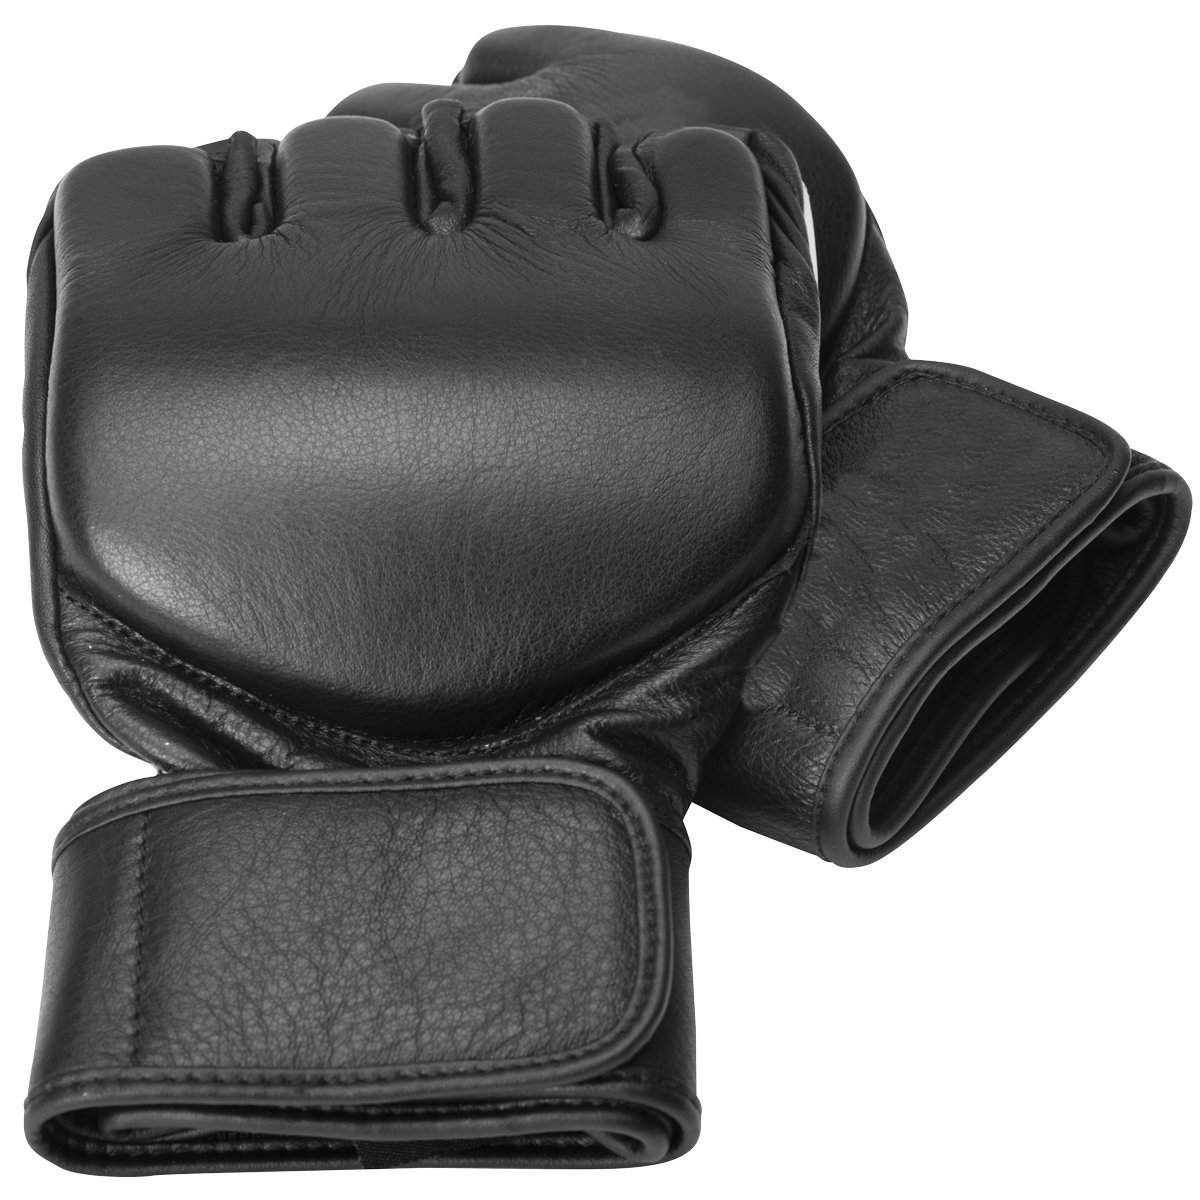 View larger image of Blank Competition Gloves - Medium